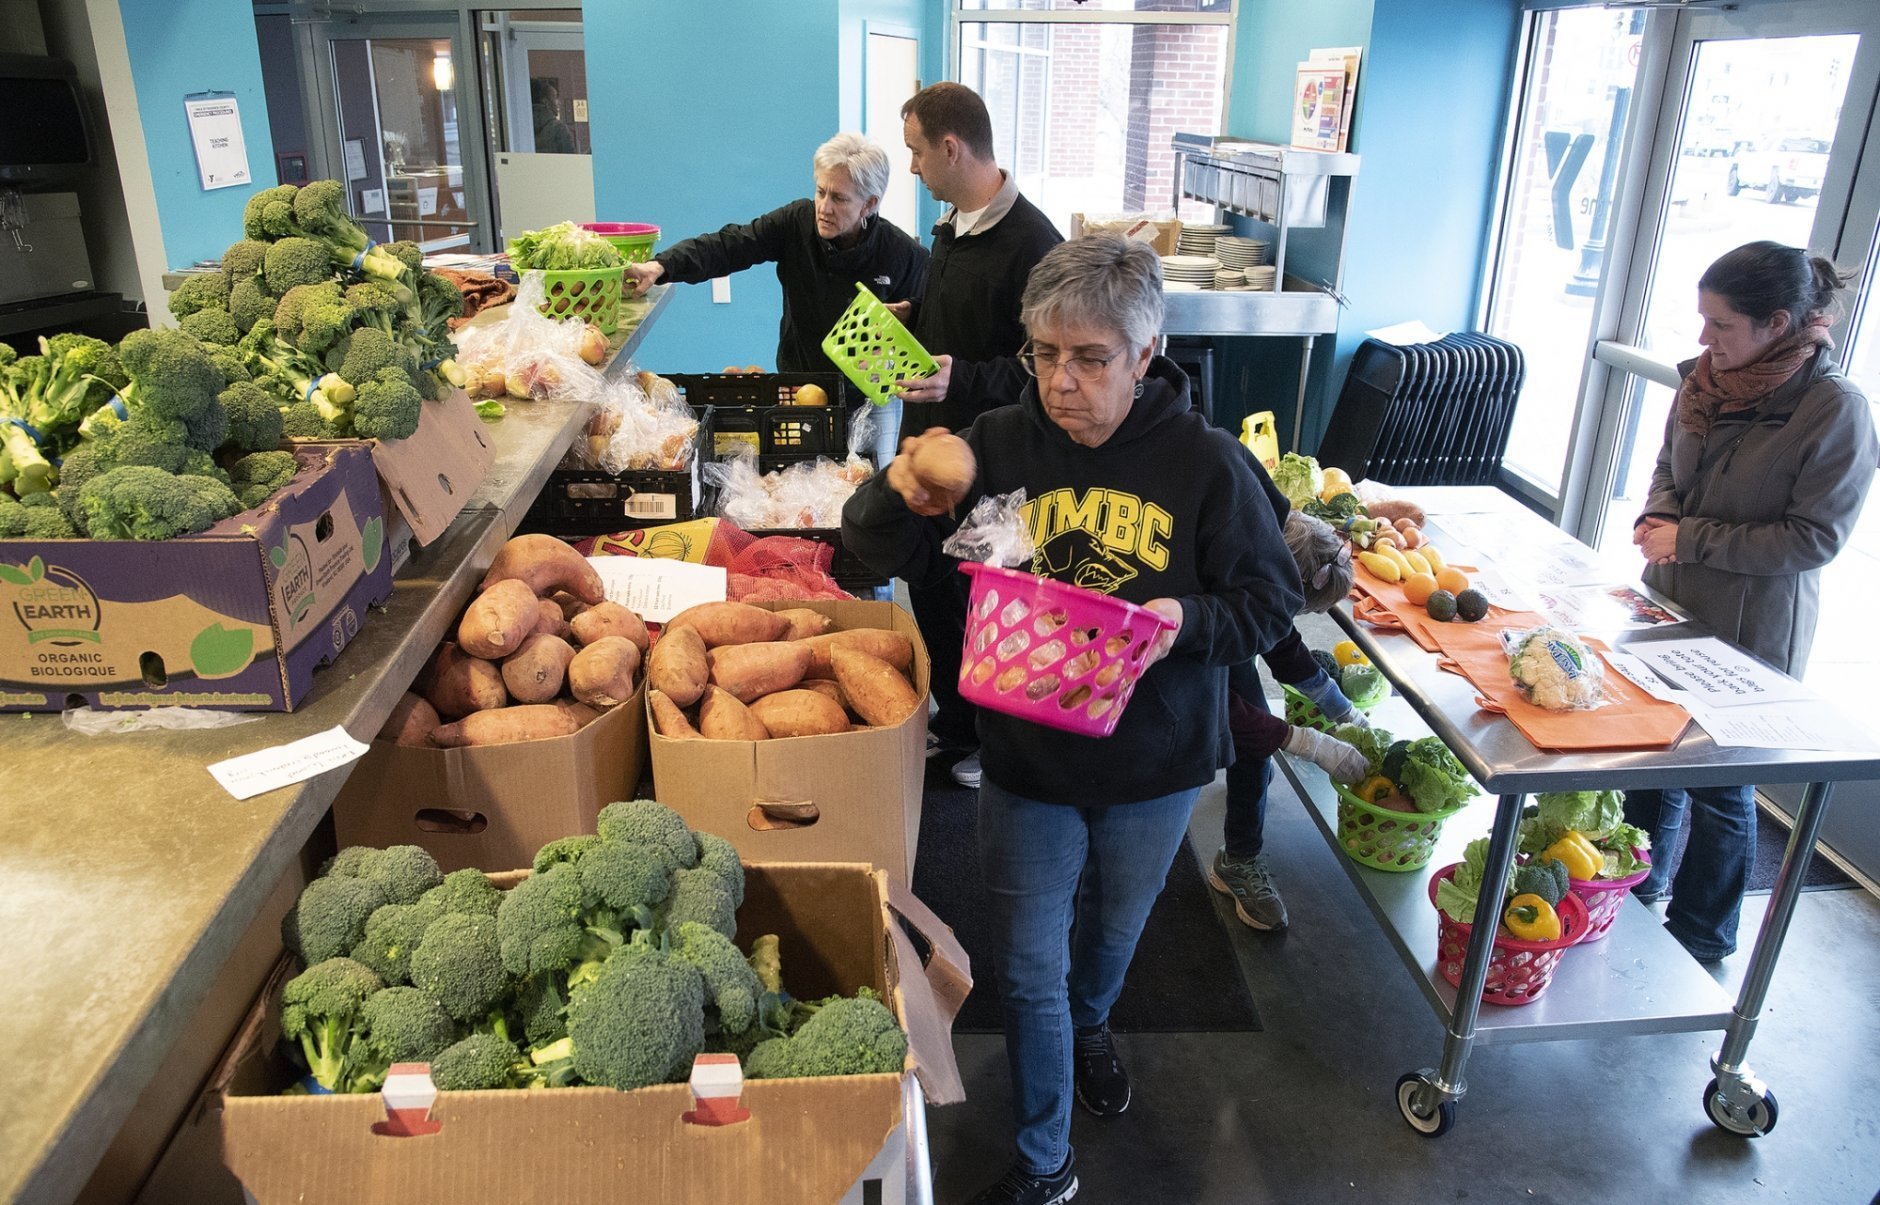 In this Wednesday, Feb. 6, 2019 photo, volunteer Peggy Haser, center, fills a basket with fresh vegetables at the Hungry Harvest reduced-cost produce market at the YMCA of Frederick County's teaching kitchen in Frederick, Md. (Dan Gross/The Frederick News-Post via AP)